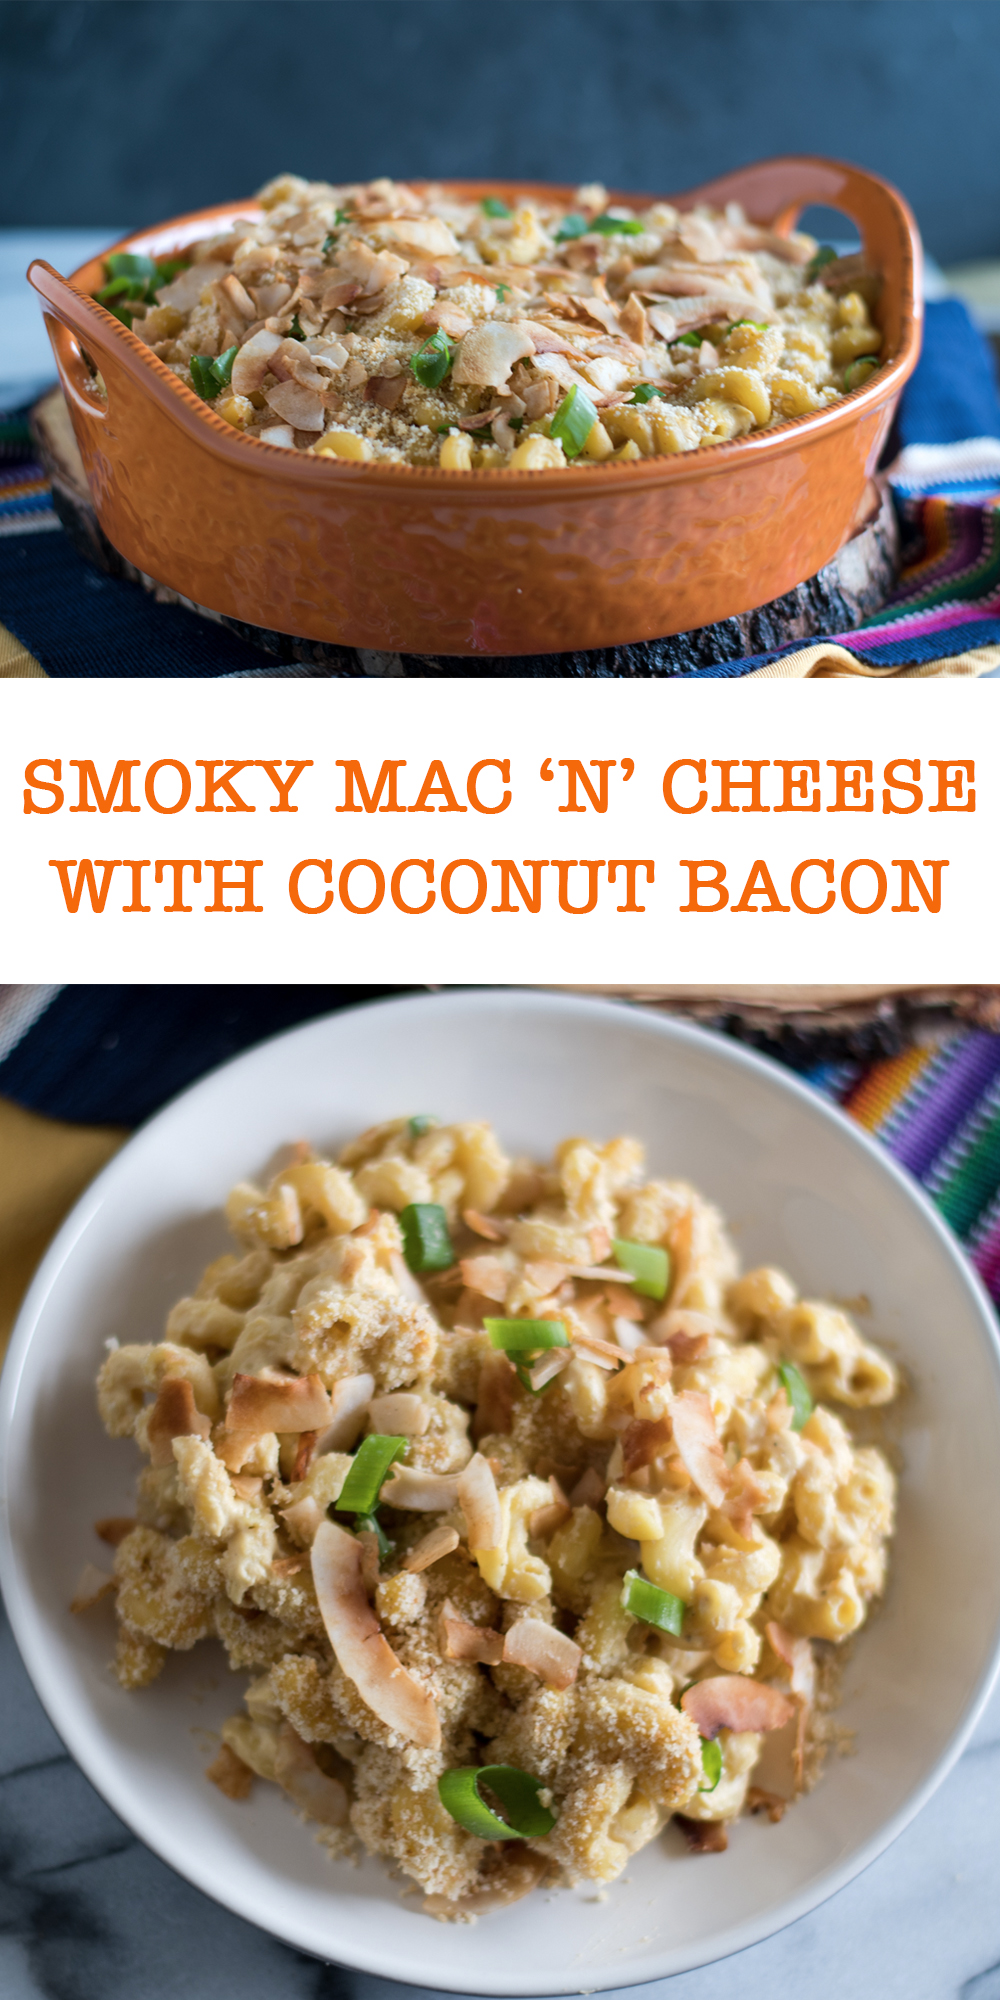 "This Smoky Mac ""n' Cheese is a decadent and soul-warming dish that is a favorite at potlucks and BBQs. The coconut bacon takes this recipe to the next level! #pasta #recipe #BBQ #vegan #dinner"